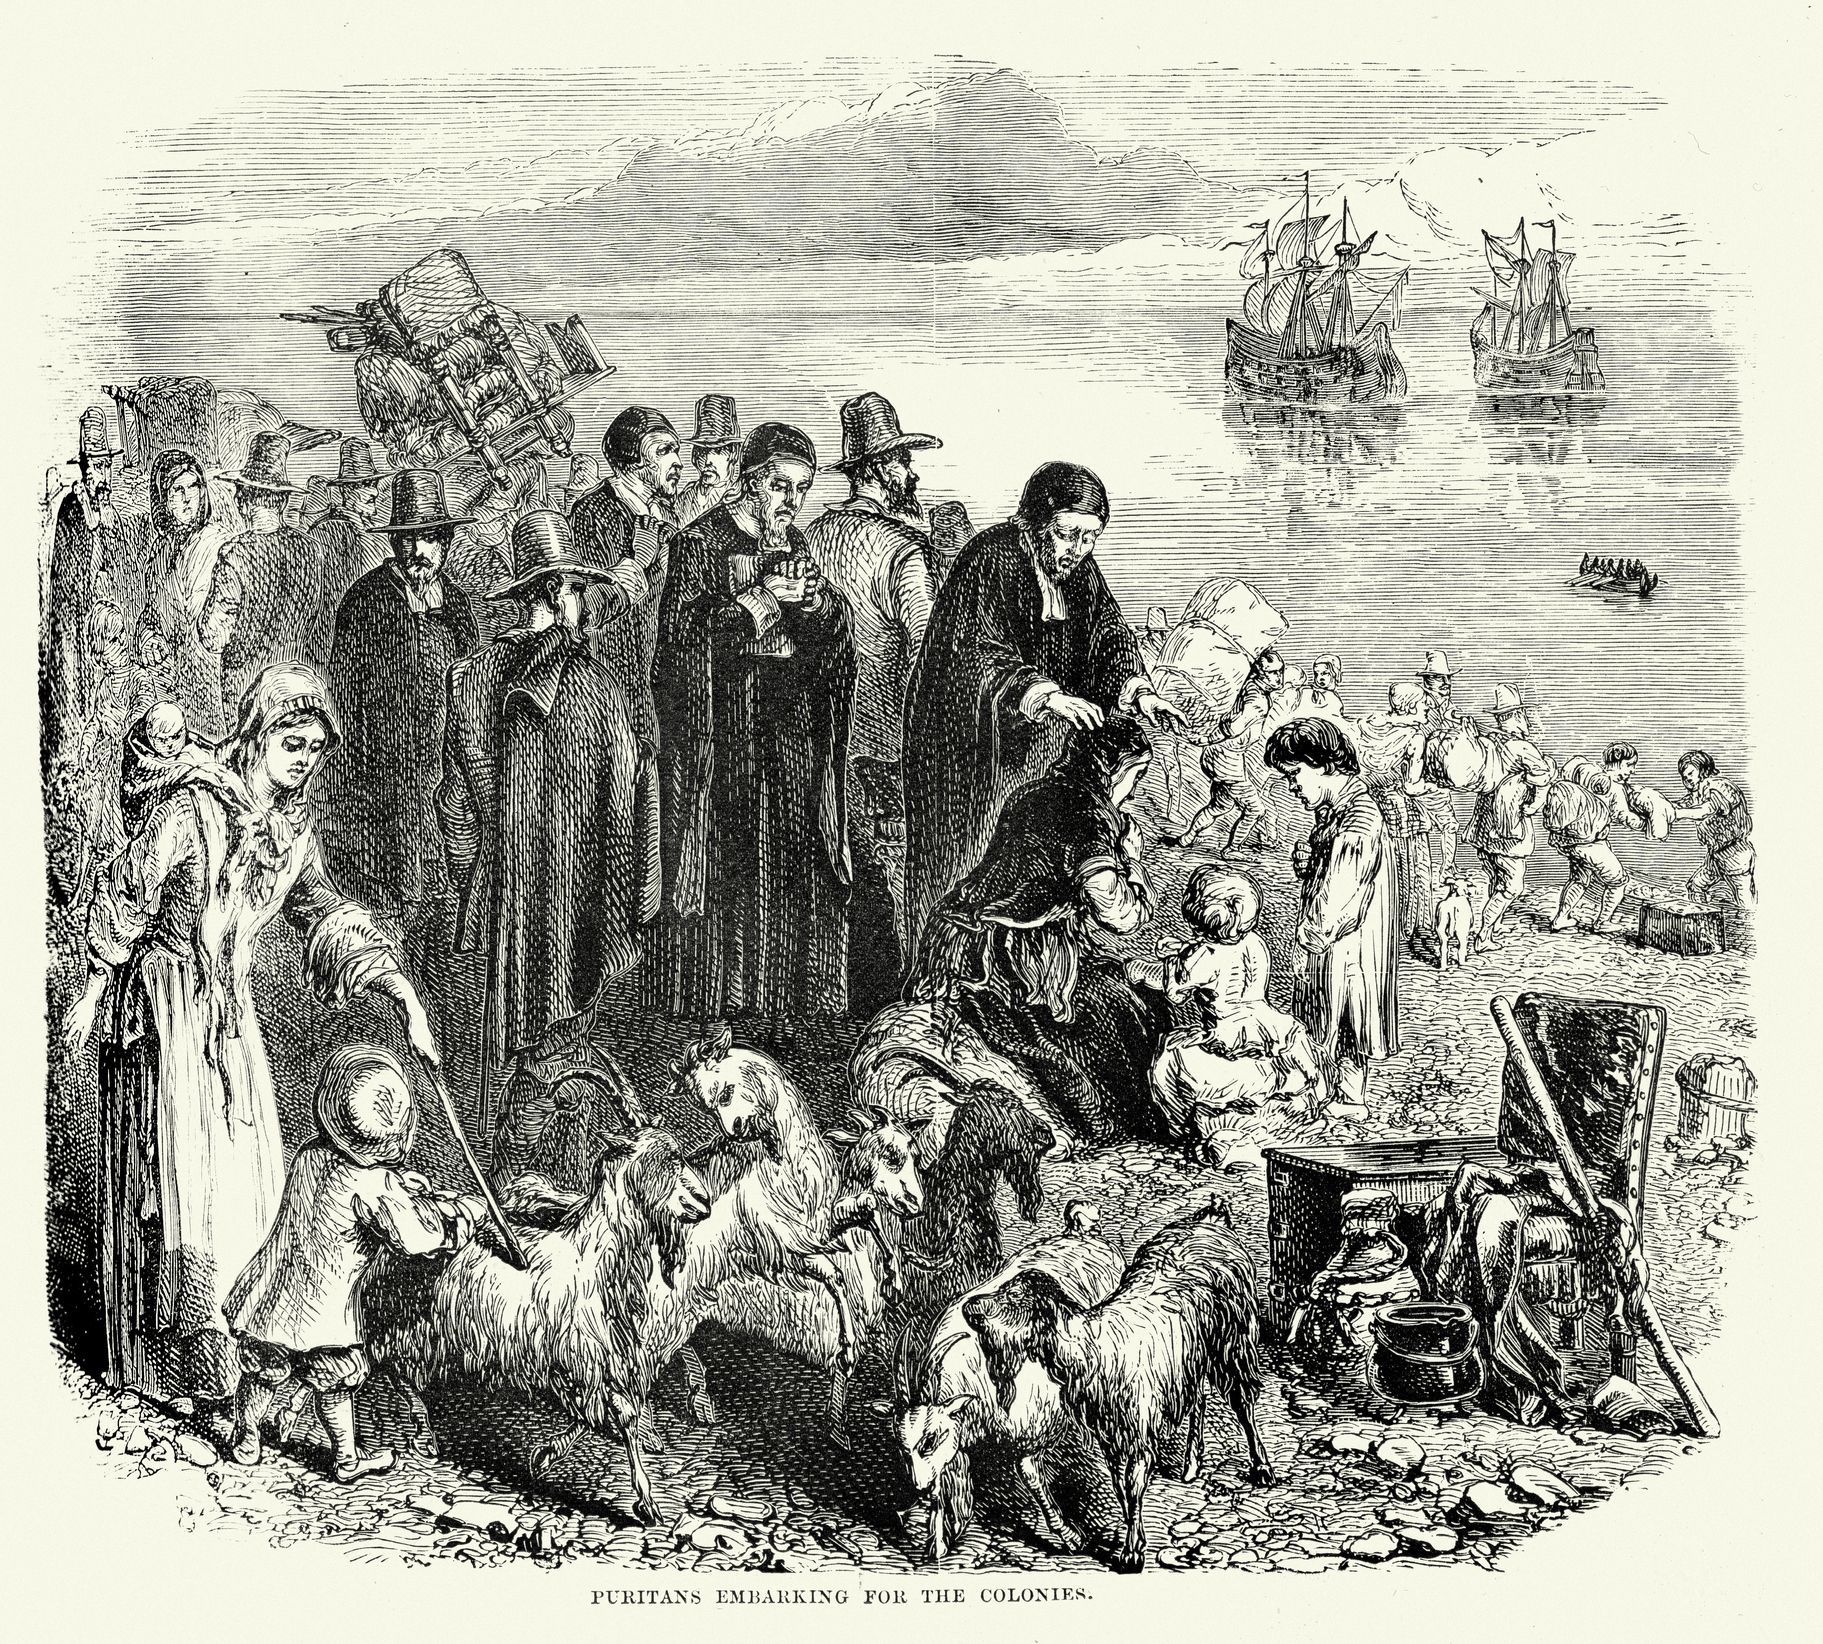 English Puritans embarking for the Colonies in the New World